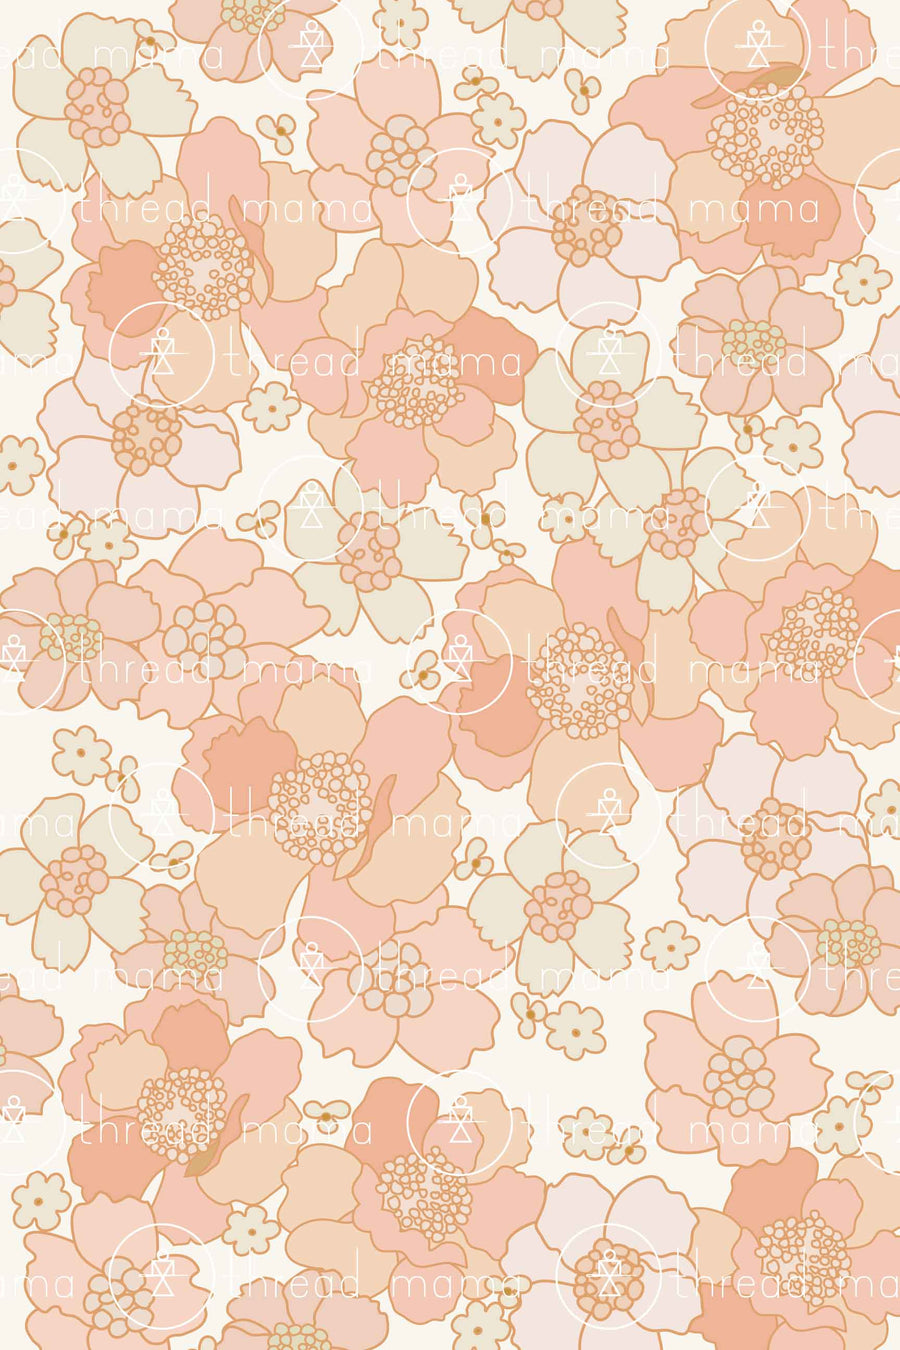 Repeating Pattern #18 (Seamless)